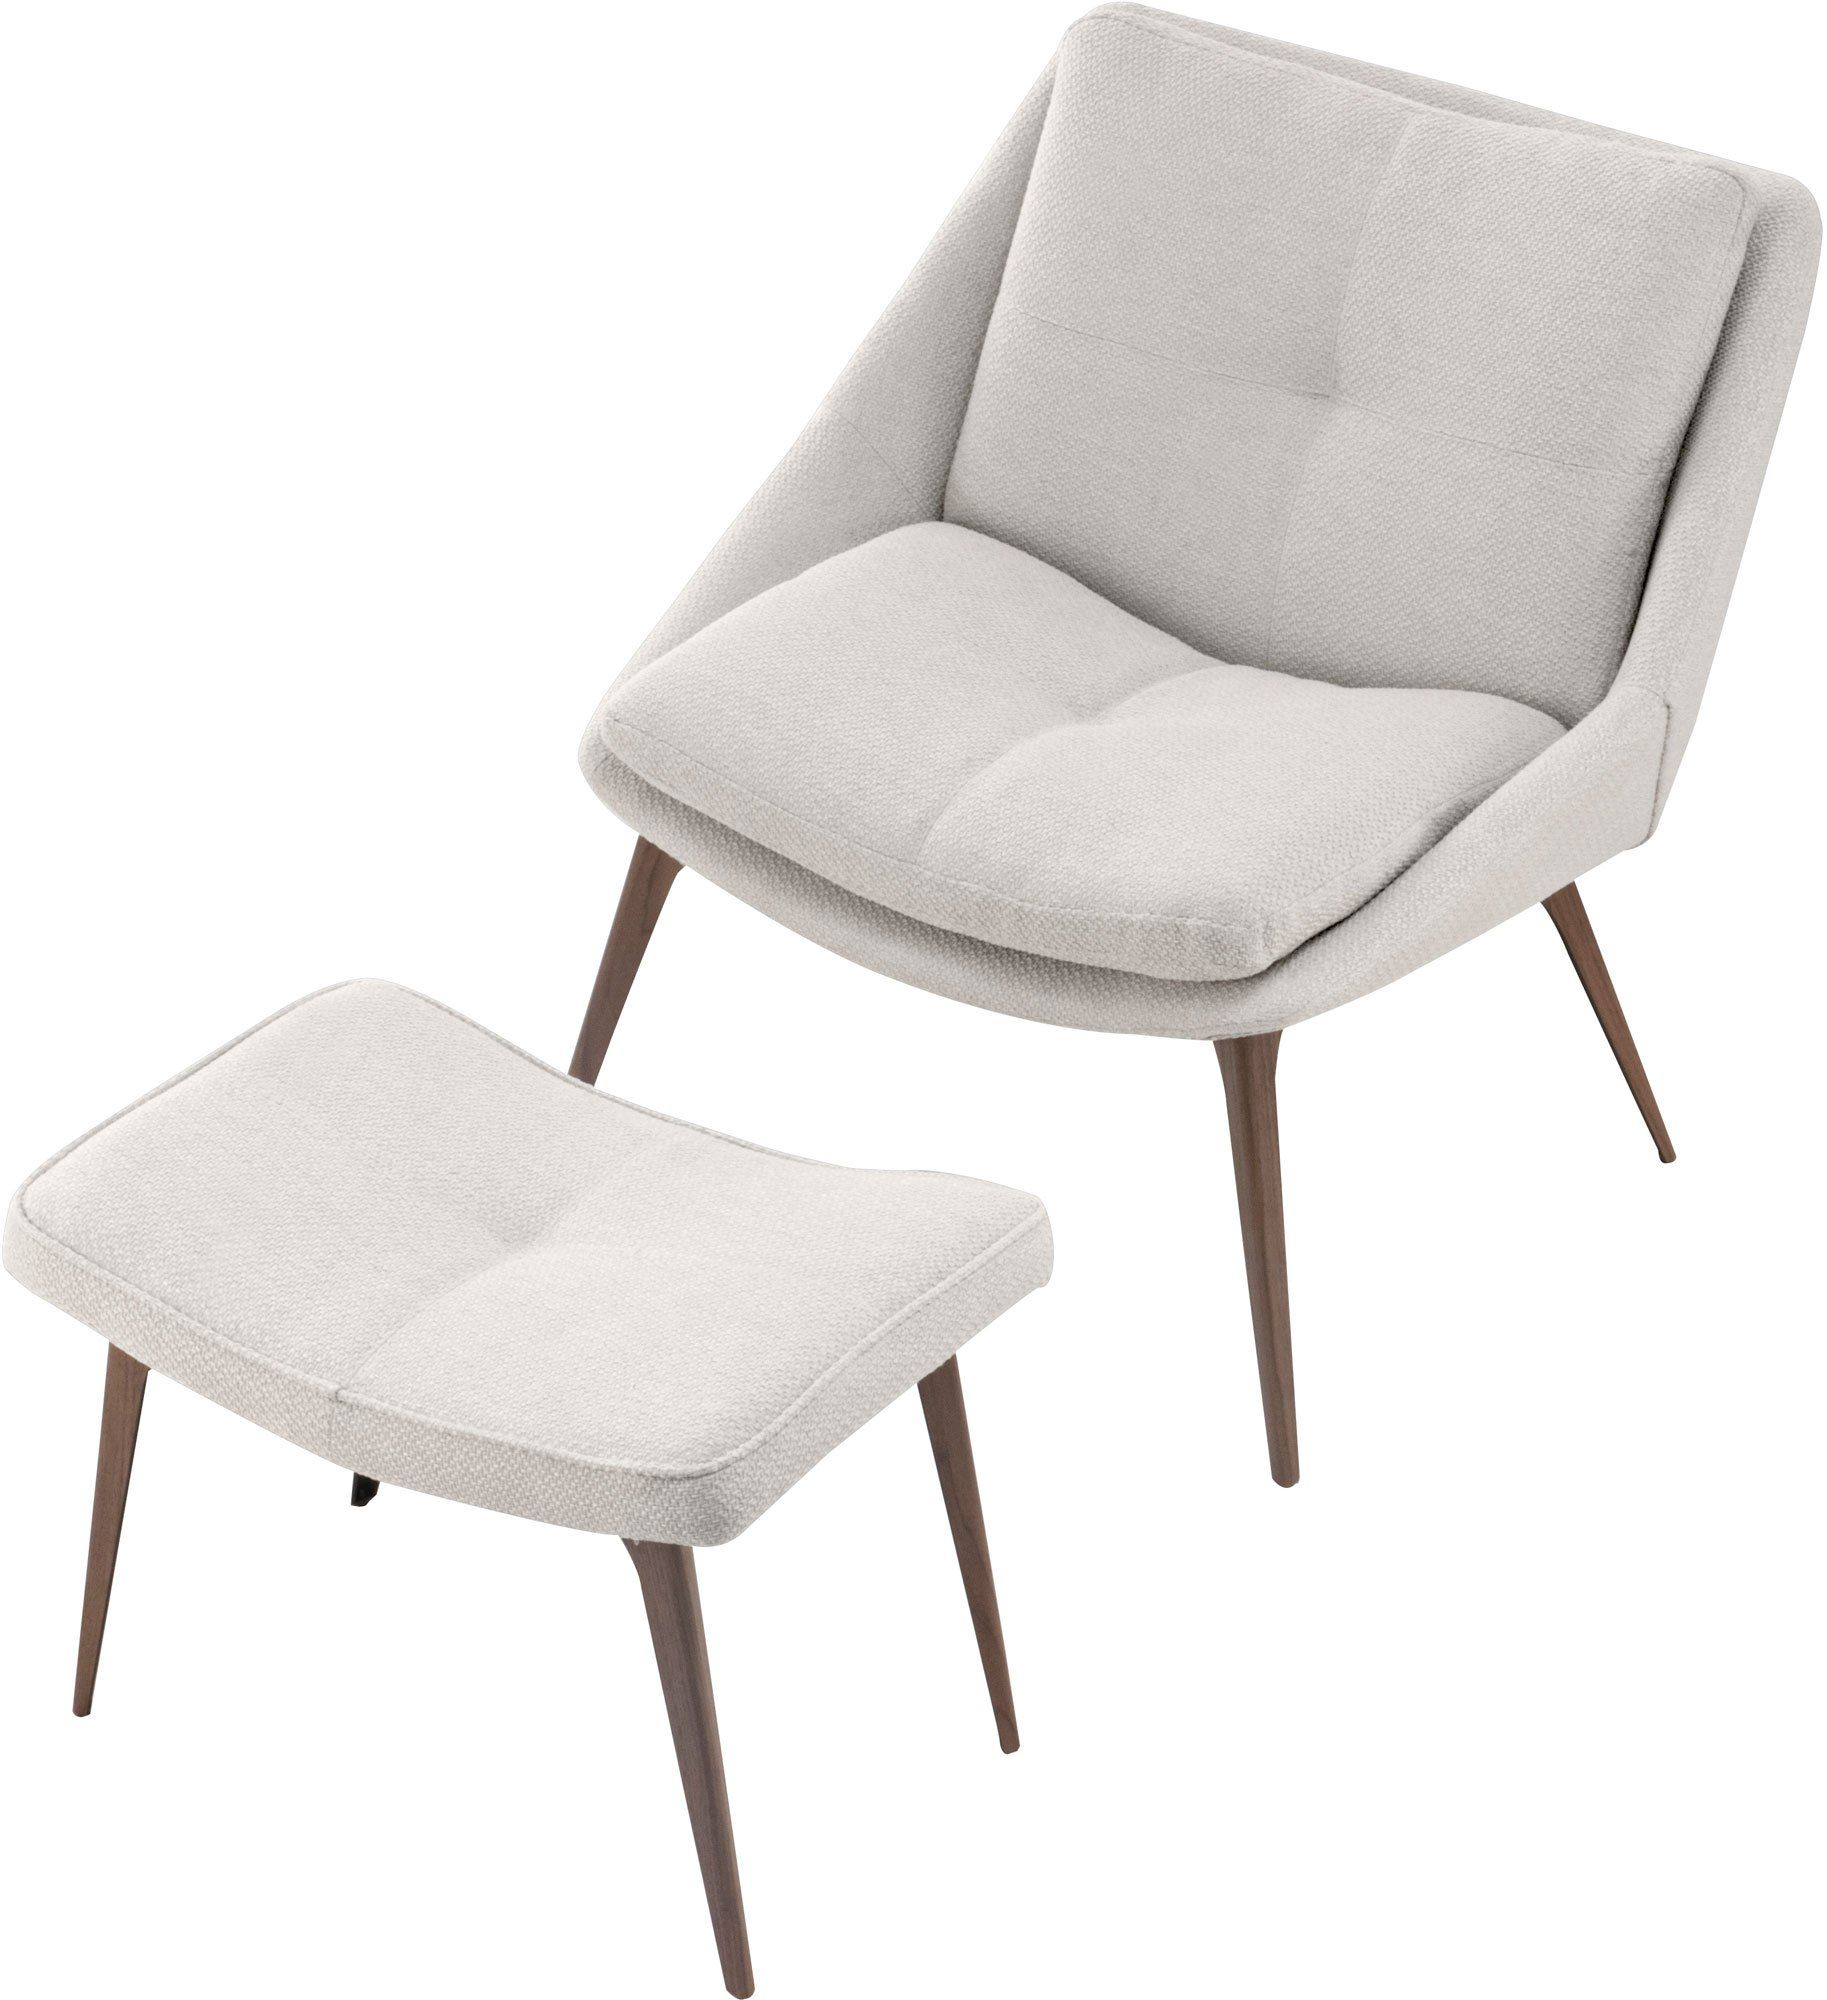 Columbus Lounge Chair And Ottoman In Birch Fabric — France Pertaining To Columbus Armchairs (View 13 of 15)